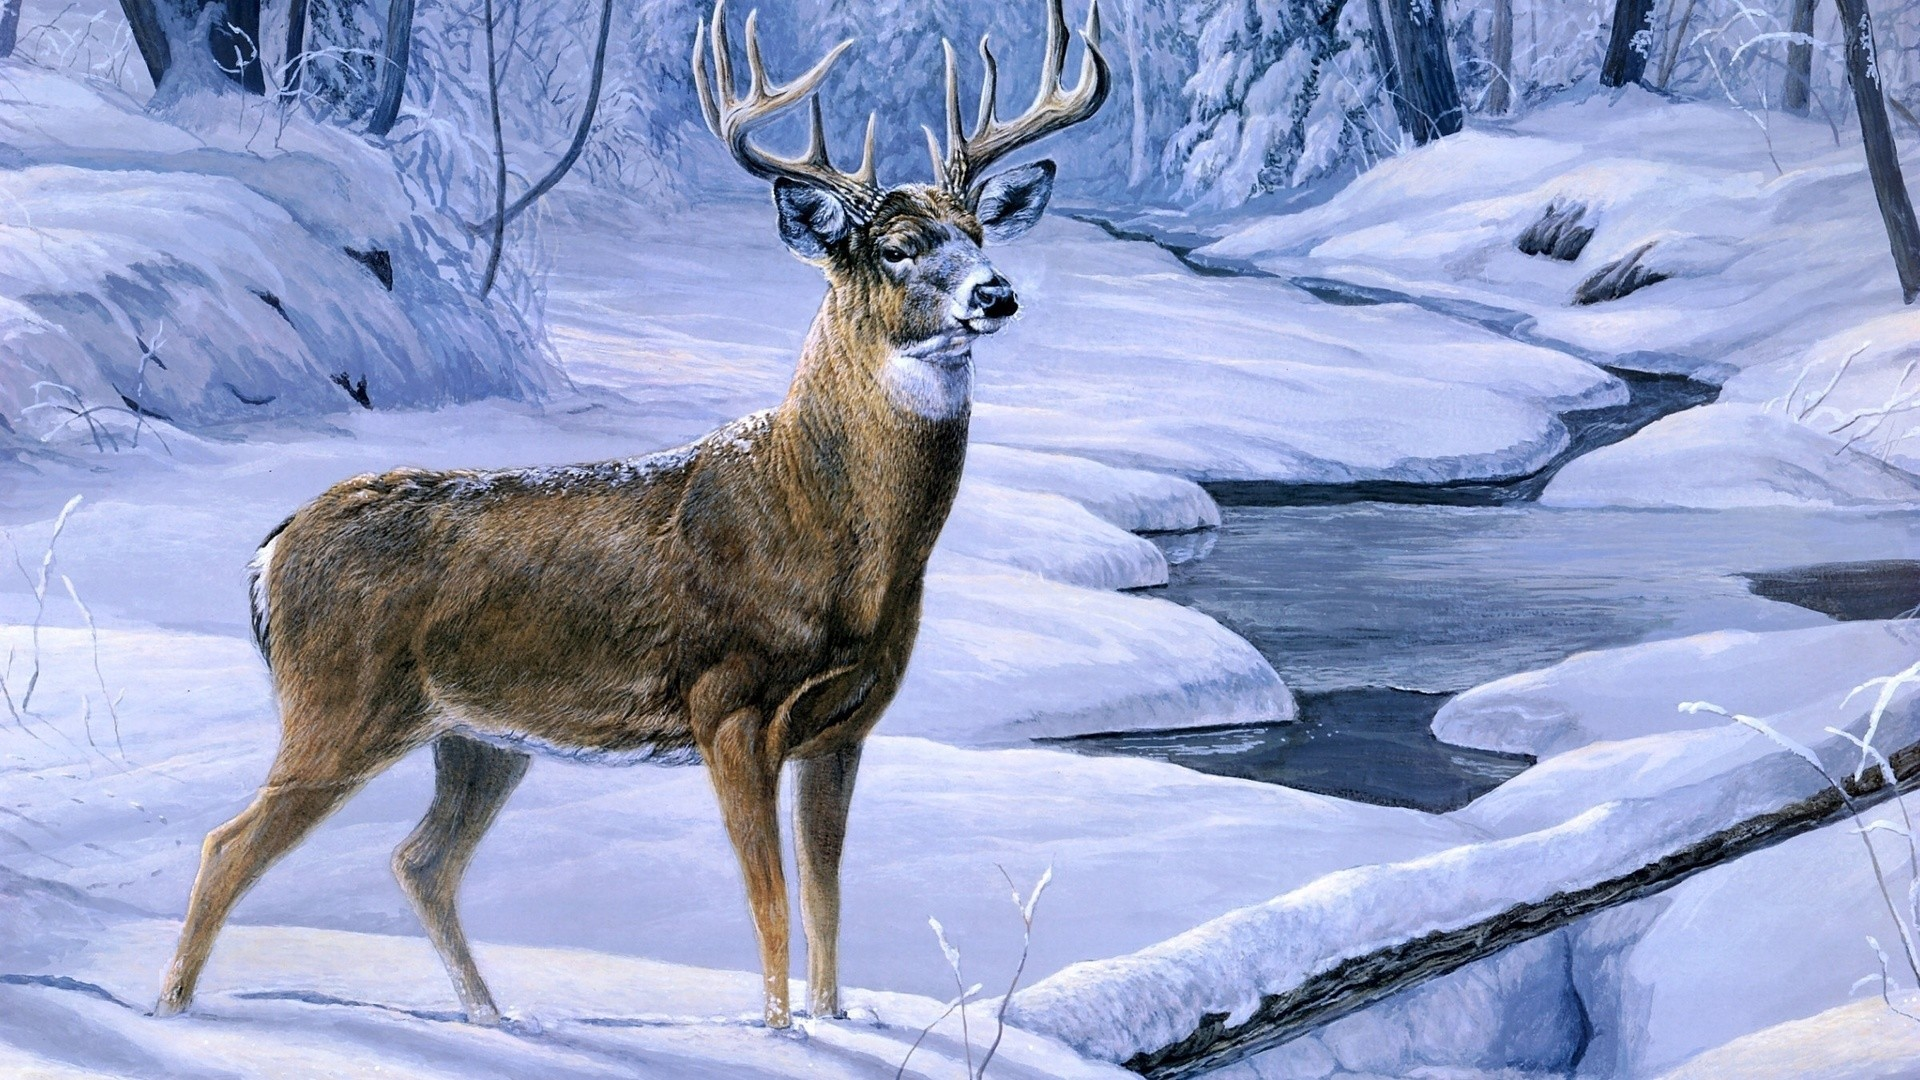 1920x1080 Hd Deer Hunting Wallpaper